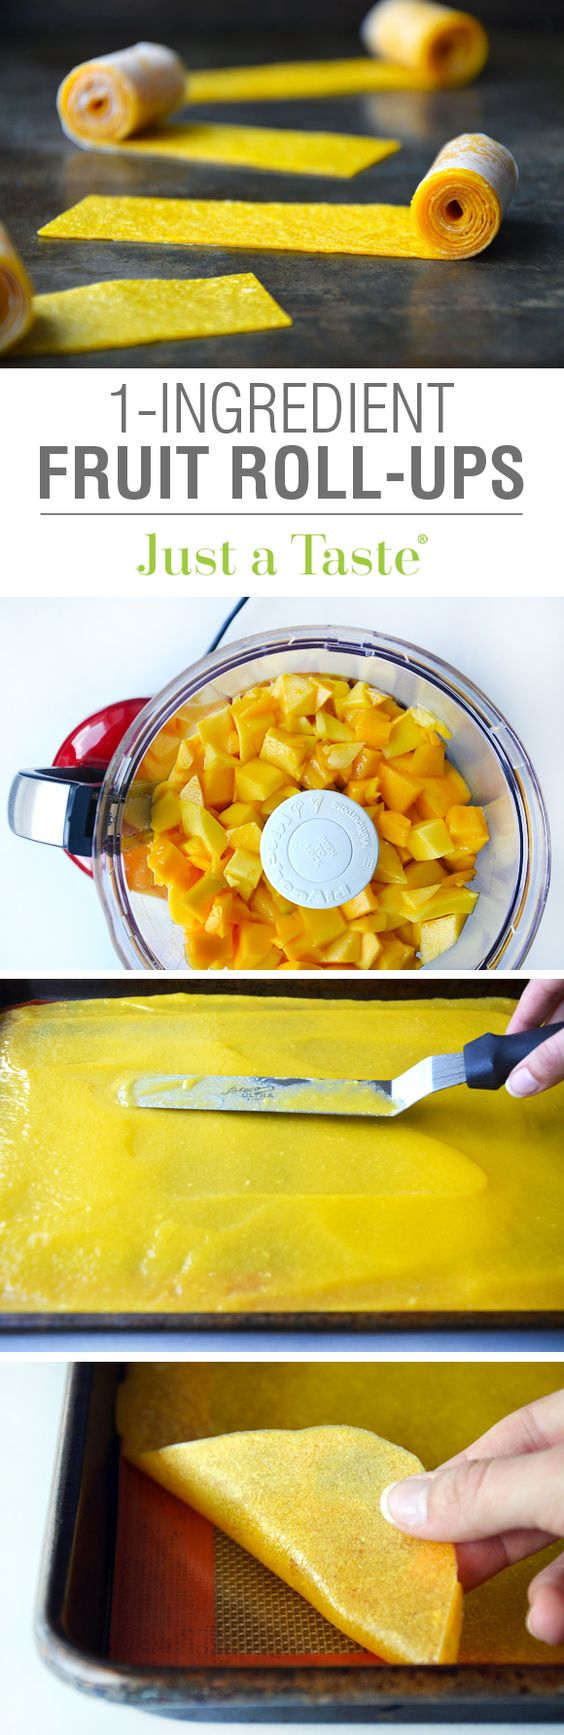 Healthy Homemade Mango Fruit Roll-Ups #recipe from @justataste